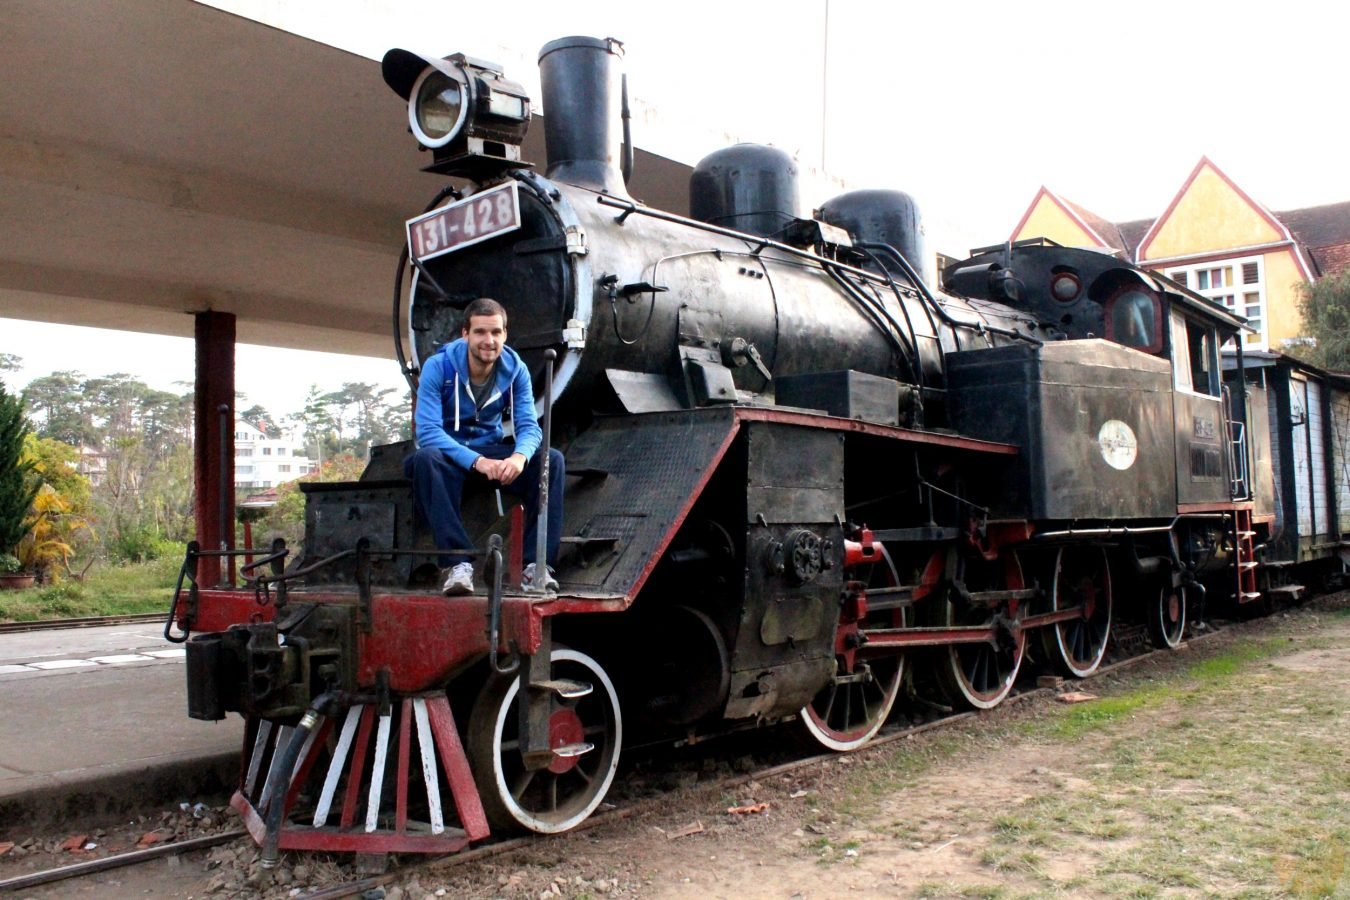 At Dalat train station